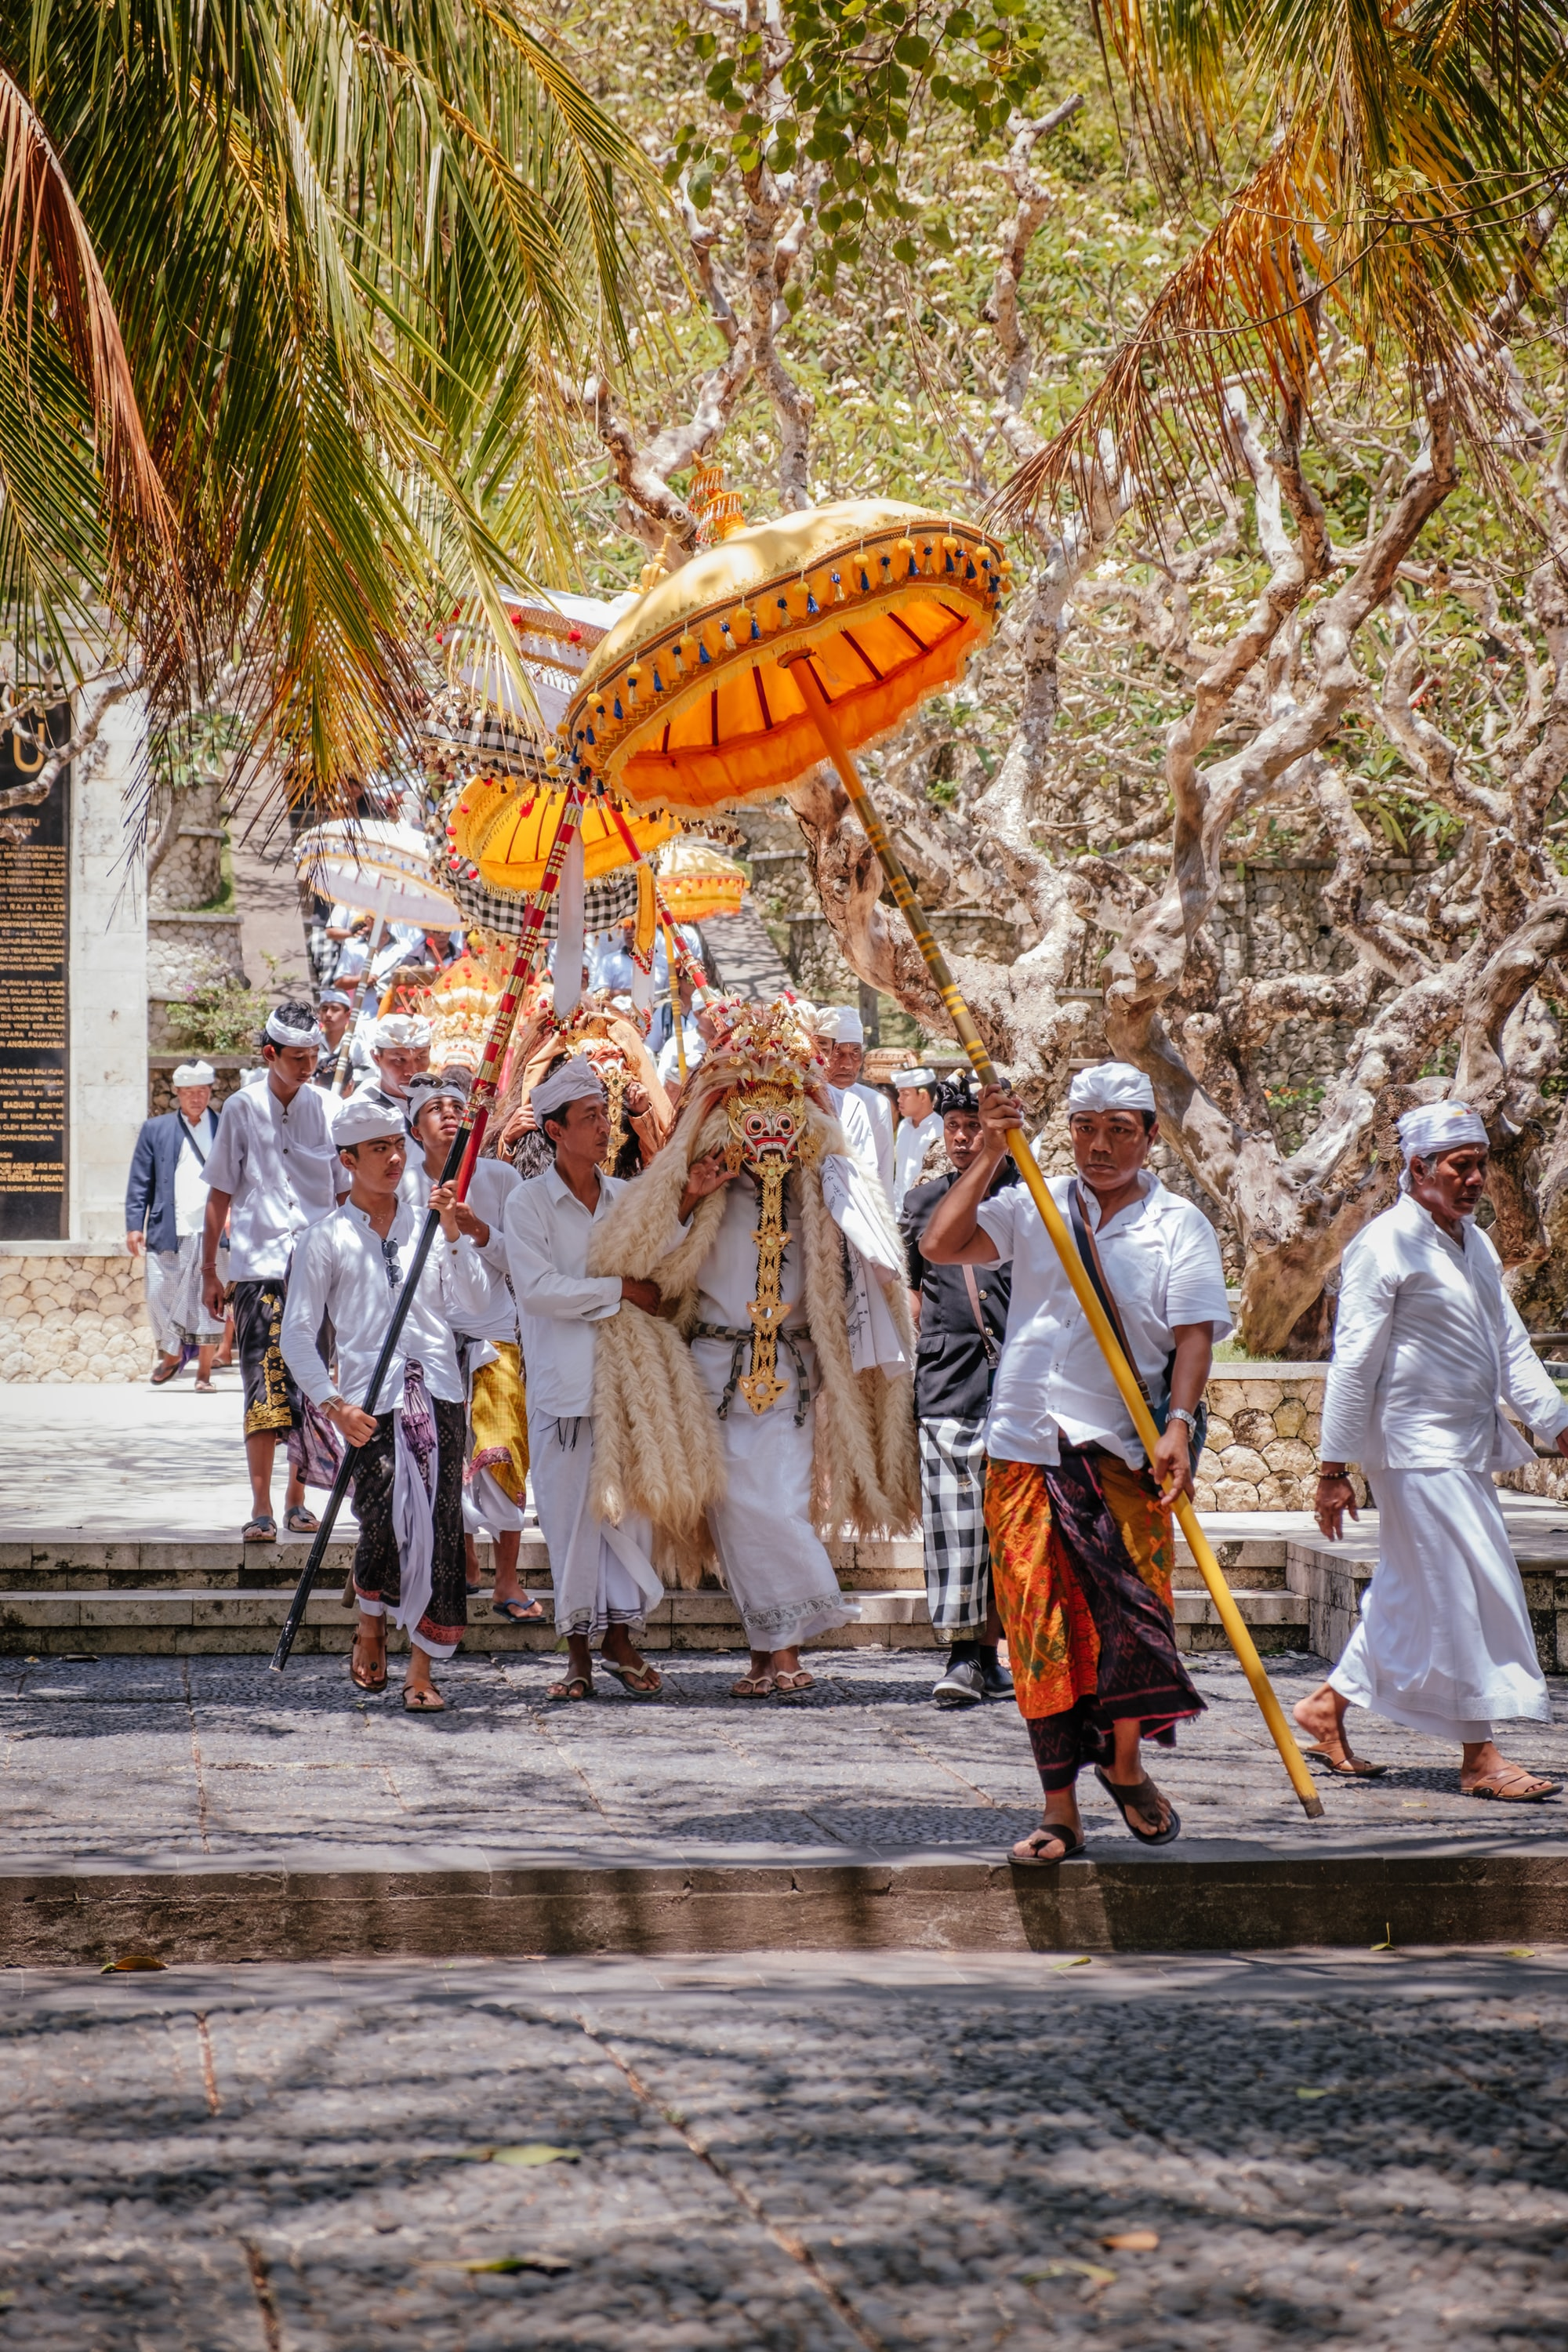 In Bali a large majority of the population practice a form of Hinduism. Diwali, the Hindu festival of lights, is the occasion for people to gather and celebrate.